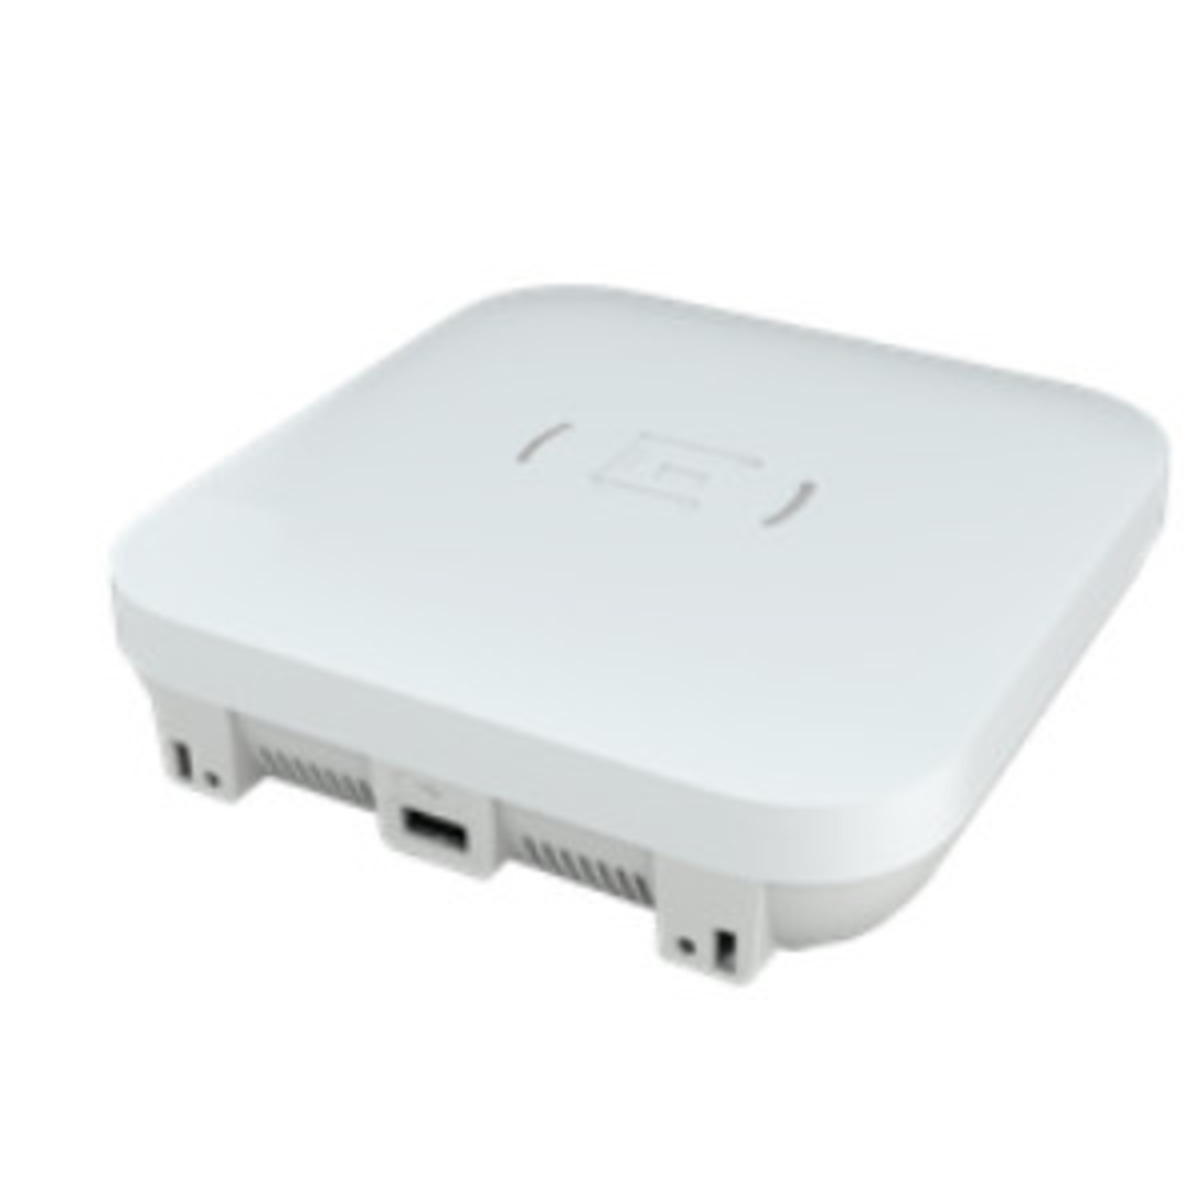 0644728355112-extreme-networks-ap310i-wr-punto-accesso-wlan-867-mbit-s-bianco-supporto-power-o